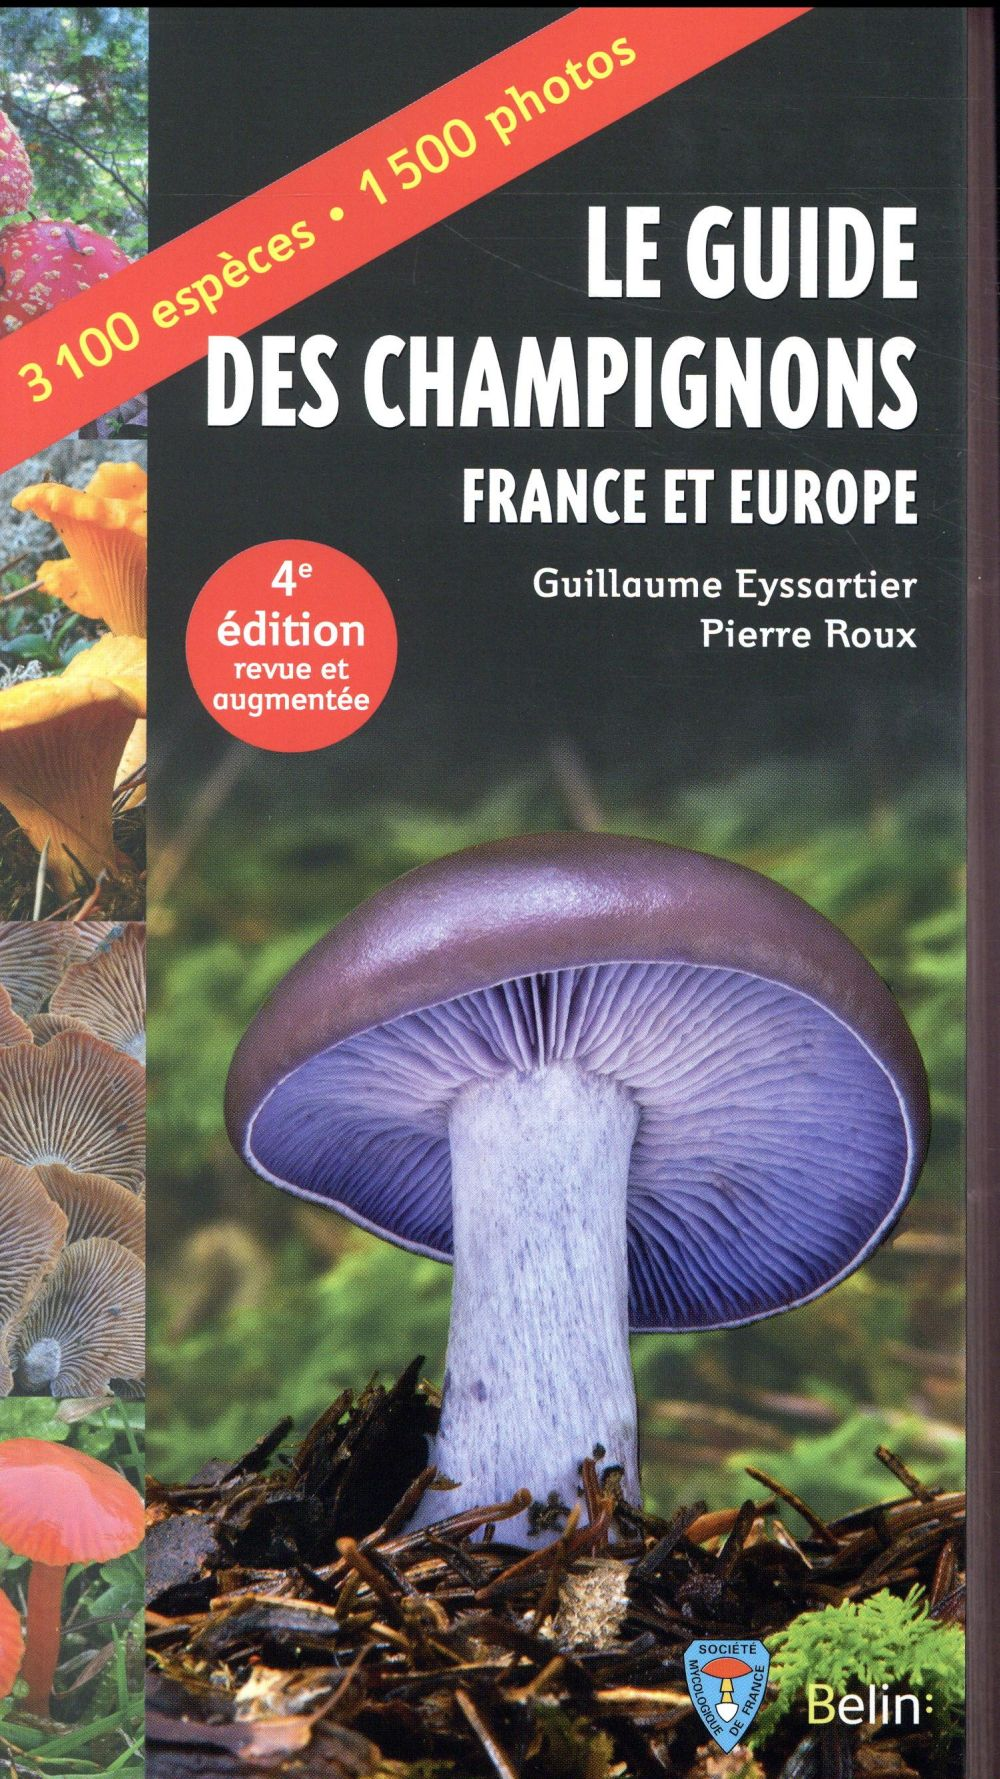 GUIDE DES CHAMPIGNONS - FRANCE ET EUROPE - 4E EDITION